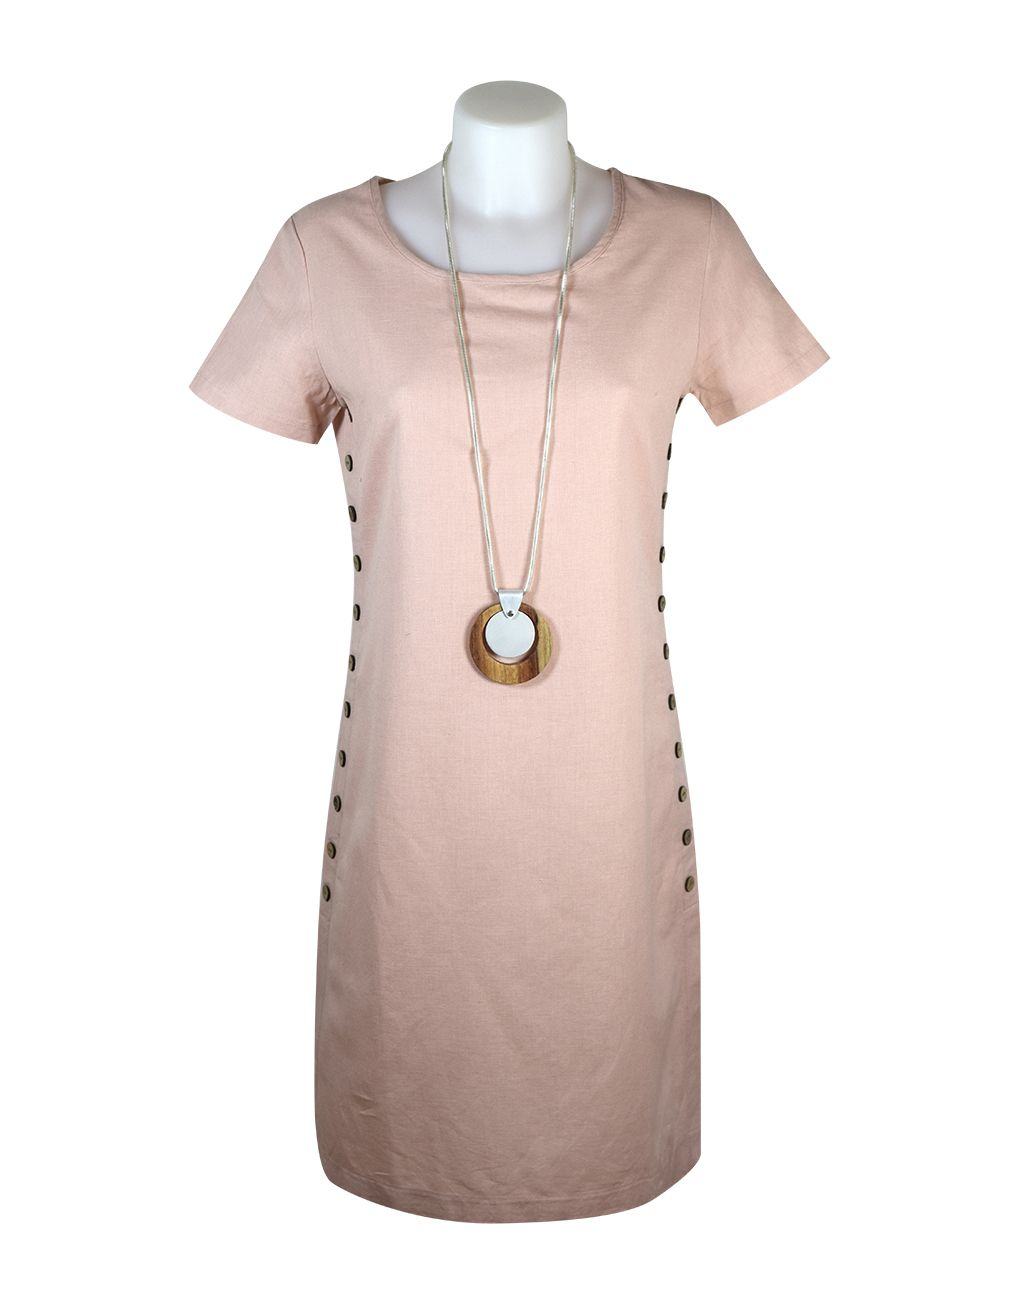 Alice Collins Kylie Dress Blush 16 XL